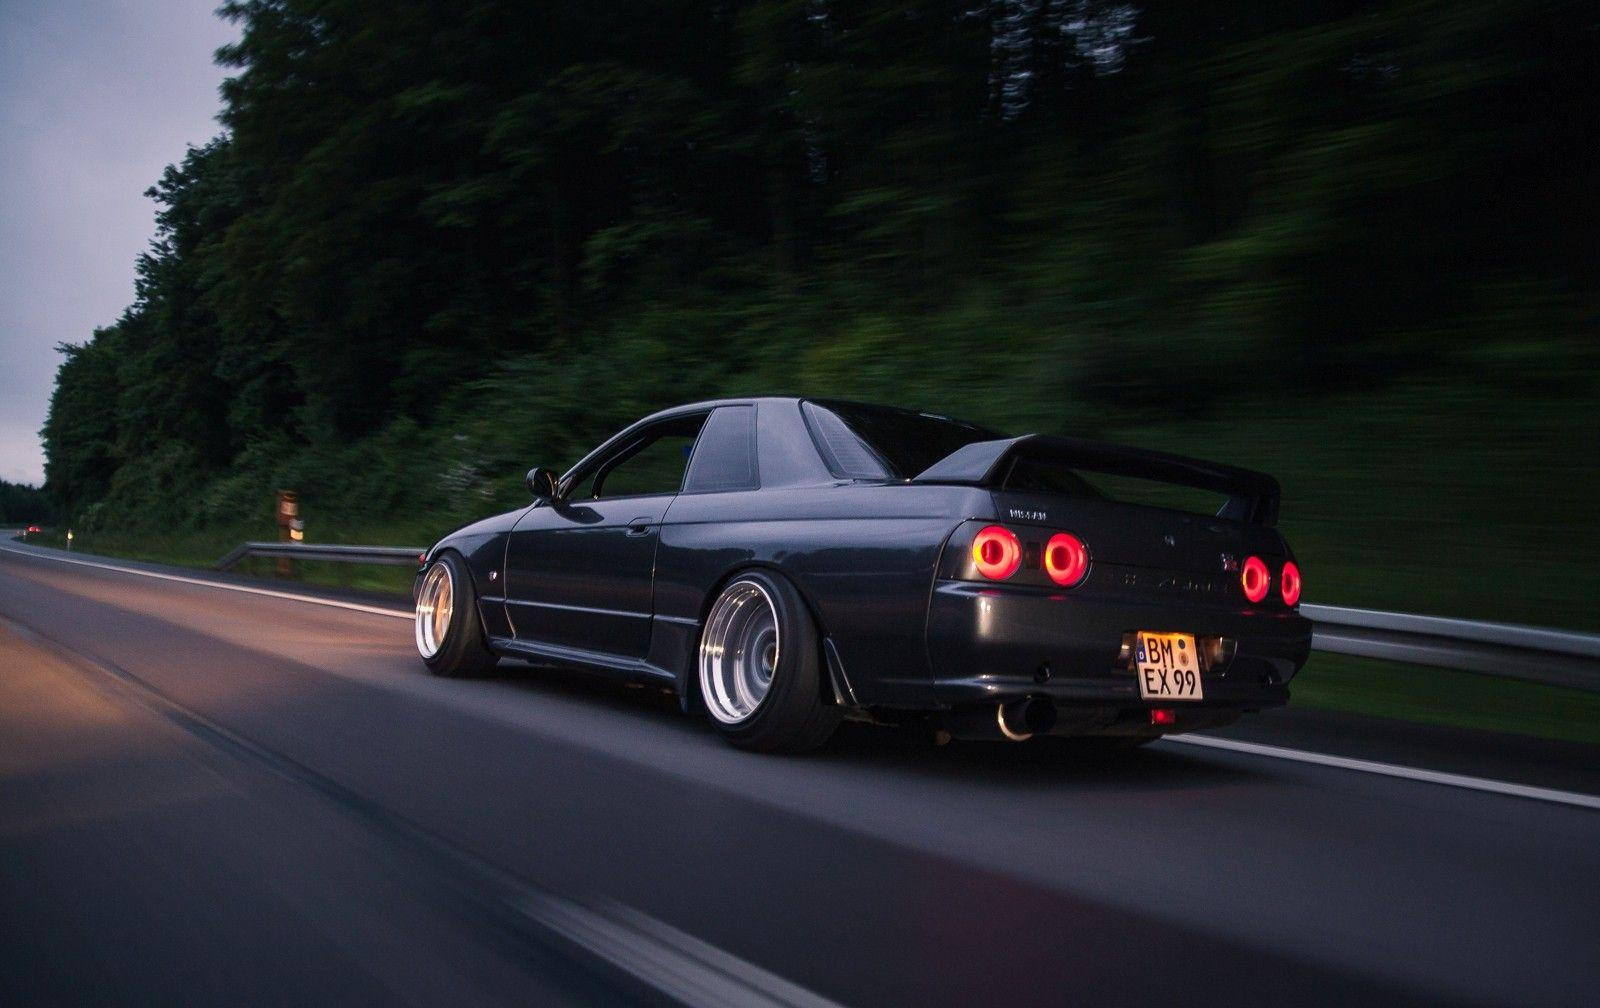 Nissan Skyline R32 HD Wallpapers - Free Desktop Images and Photos